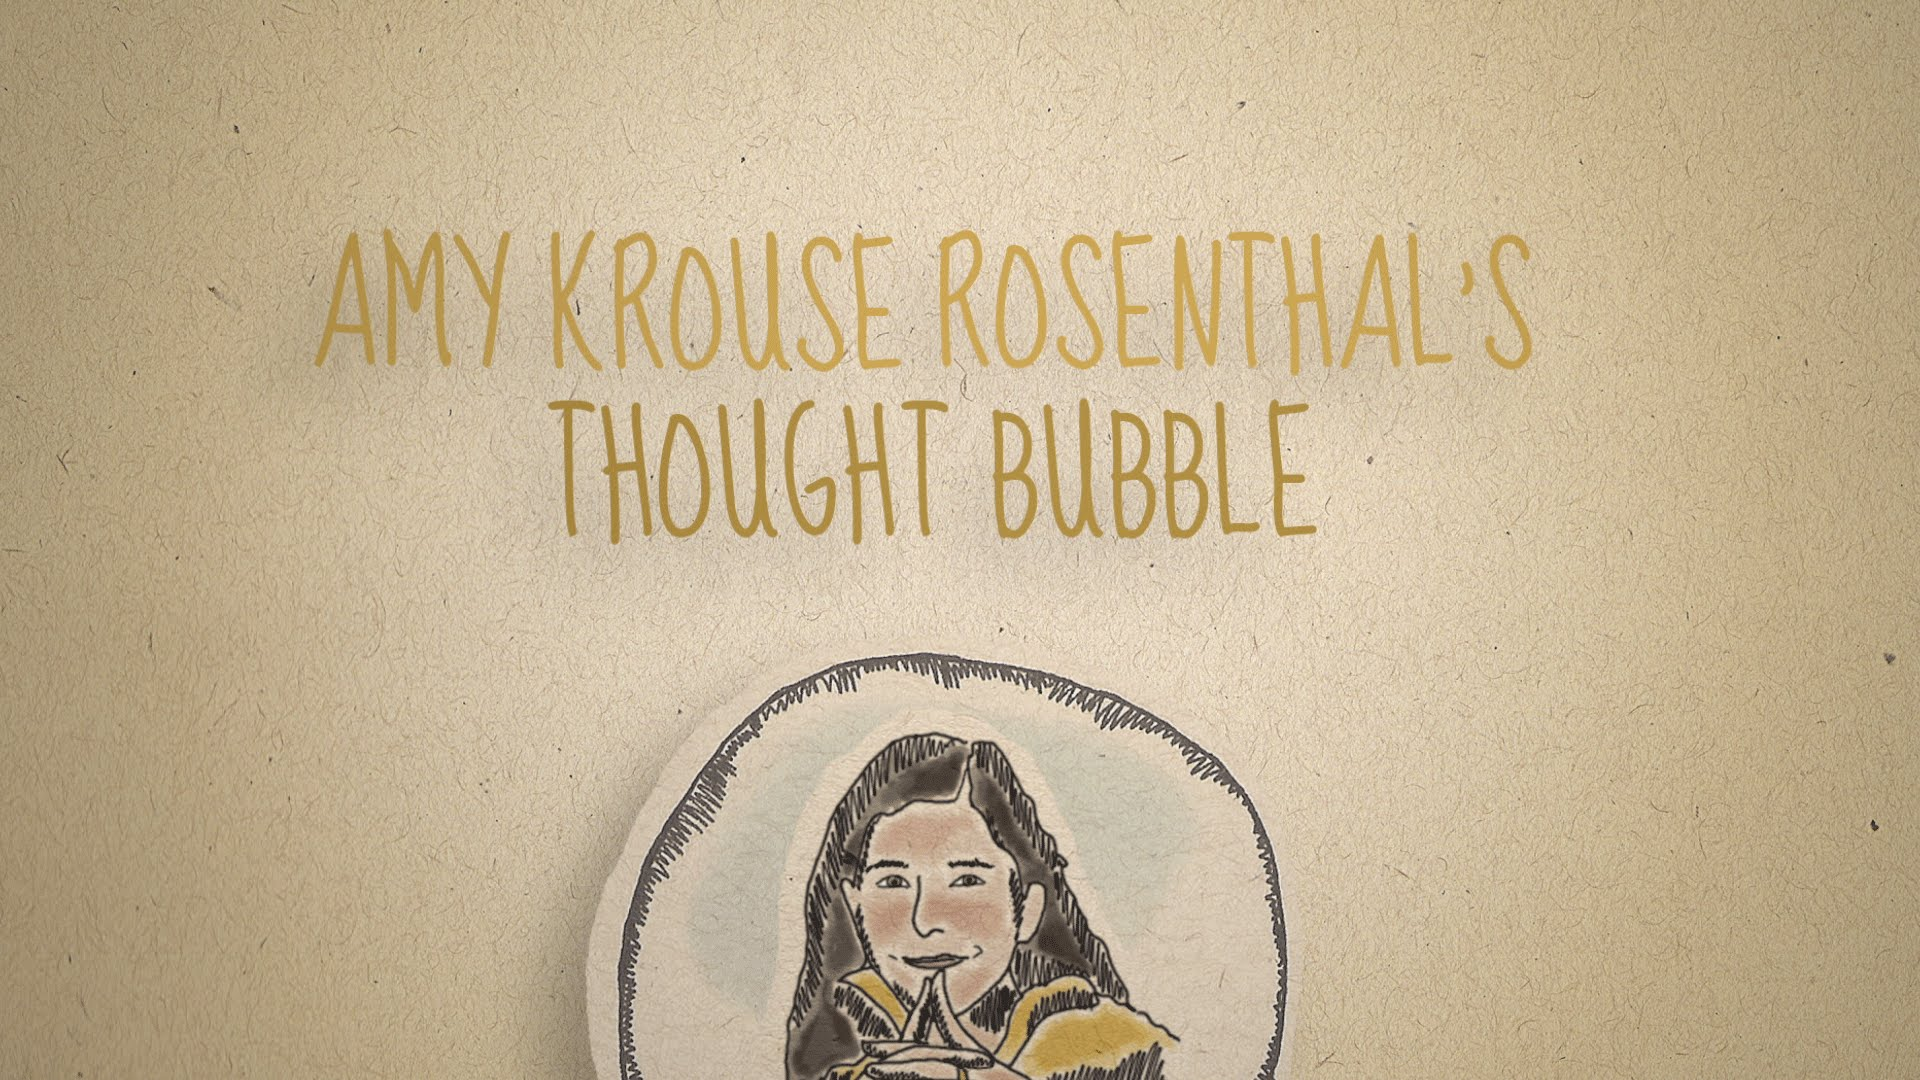 Kindness Though Bubble , created and narrated by  Amy Krouse Rosenthal and animated and produced by Thought Bubble